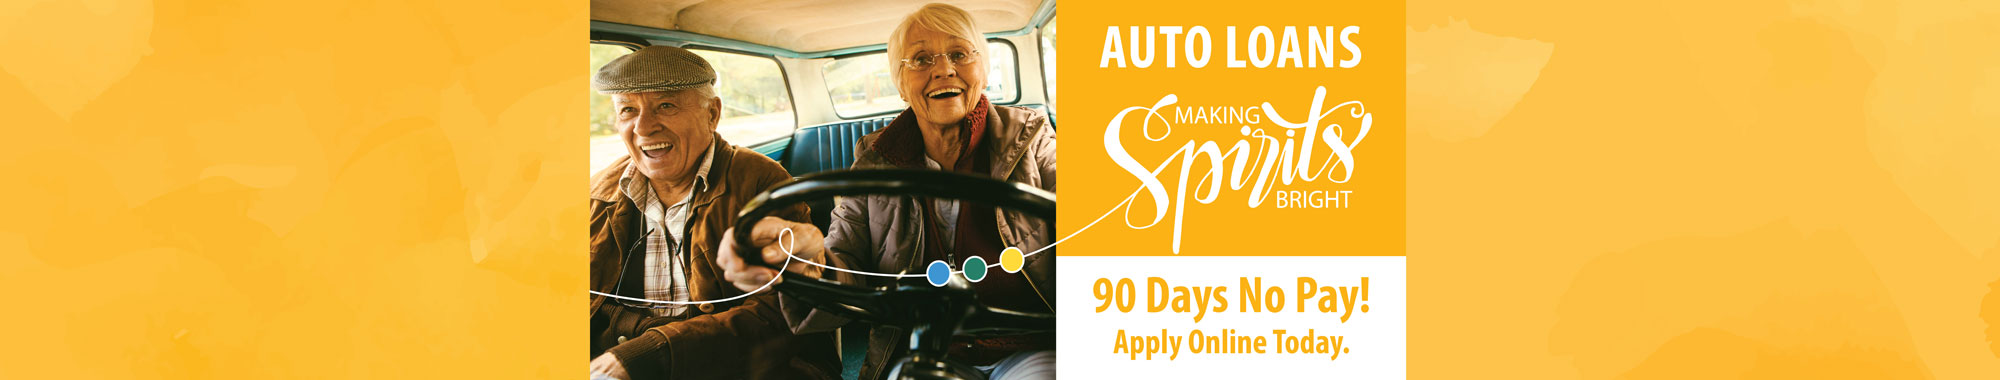 We're here to make your spirits bright! Apply online for your auto loan today.